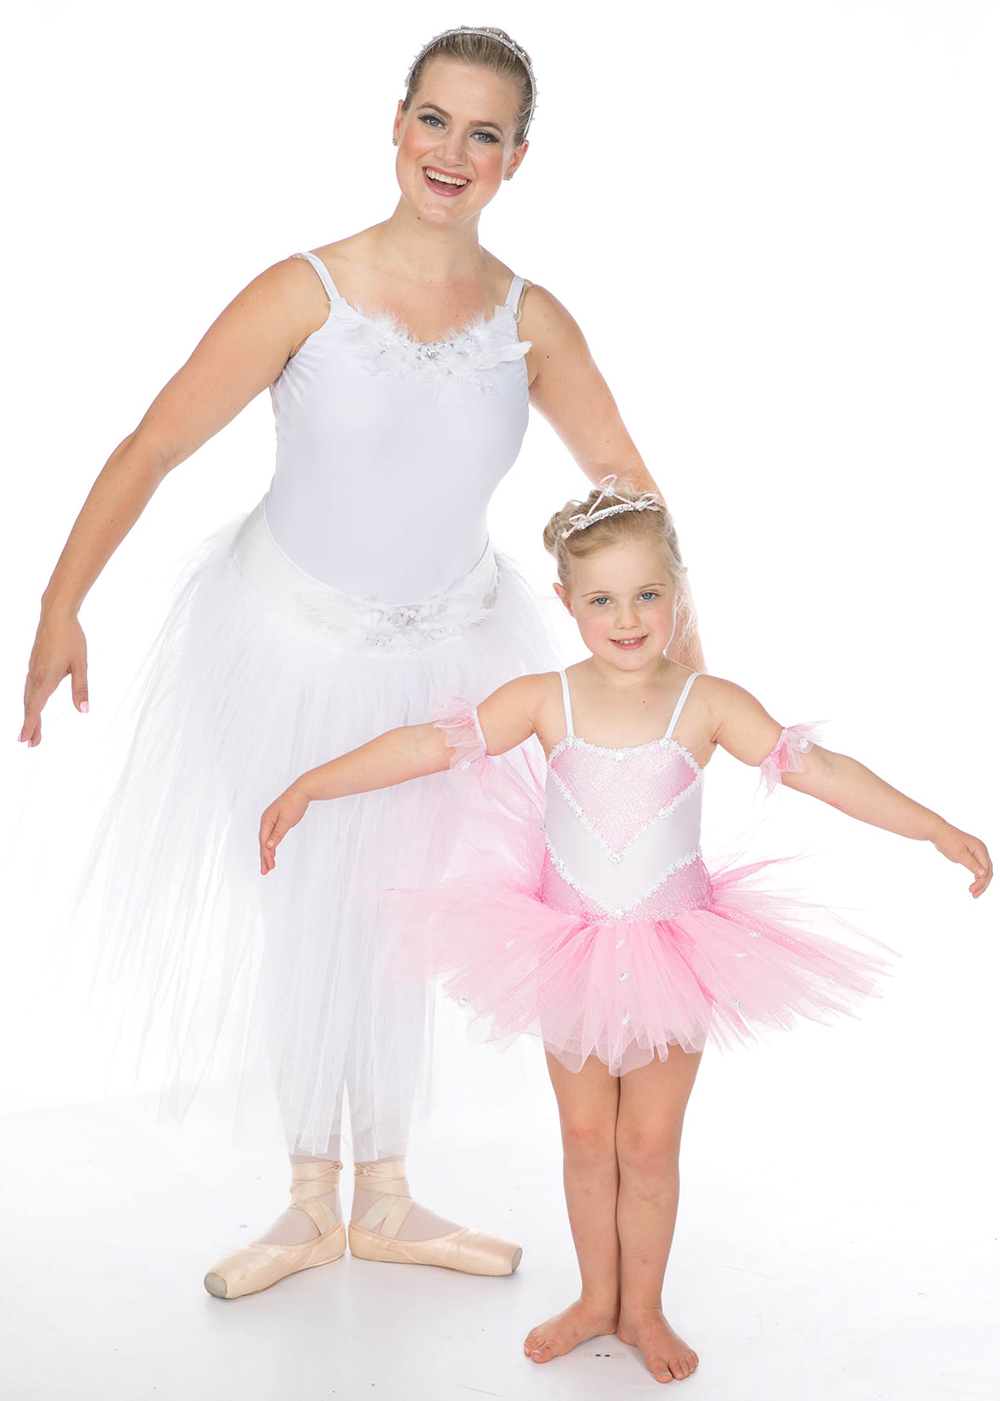 Ballet - Classical ballet tuition under the Royal Academy of Dance syllabus. Exams offered.